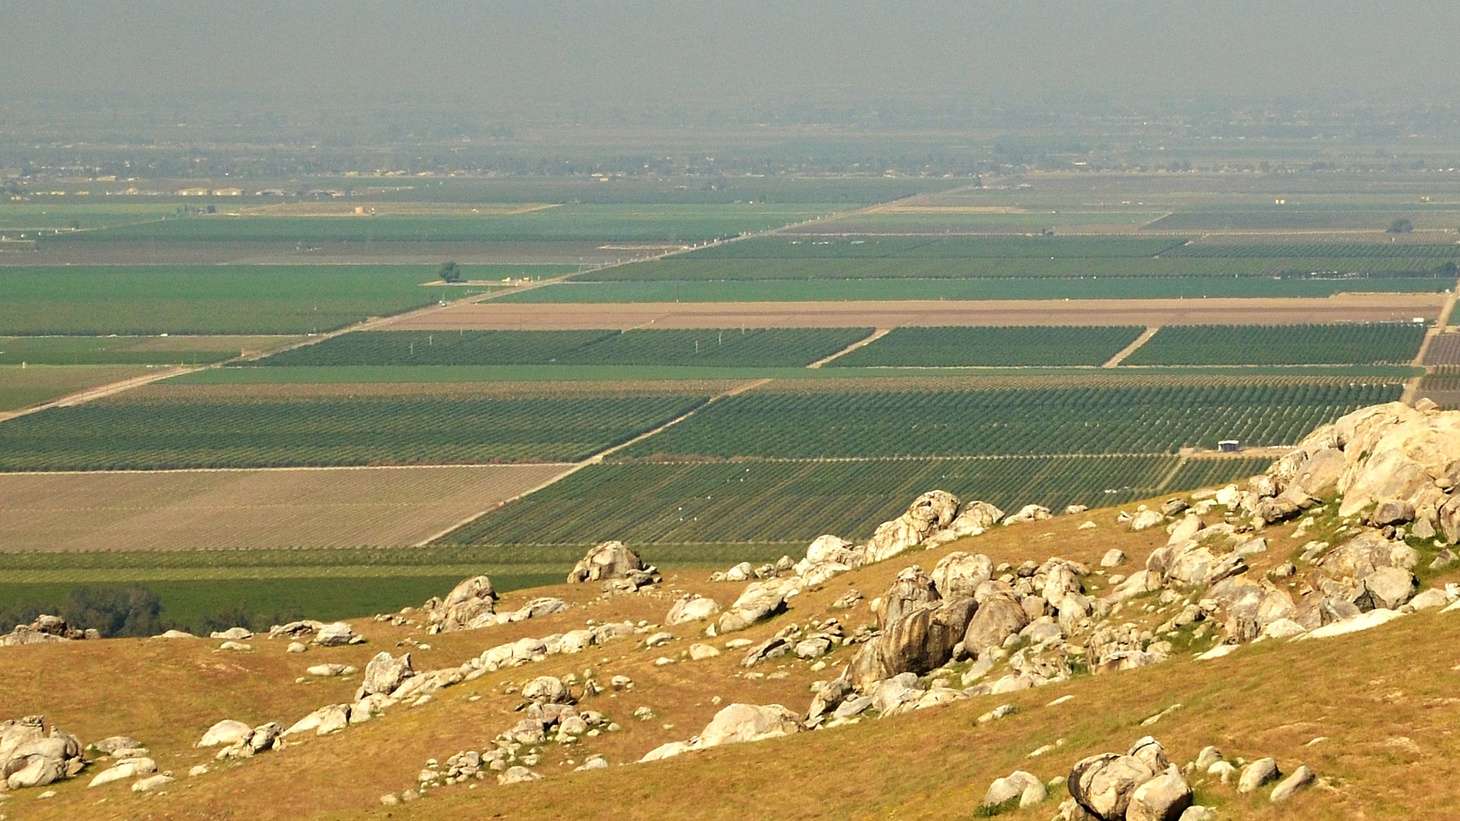 The San Joaquin Valley.